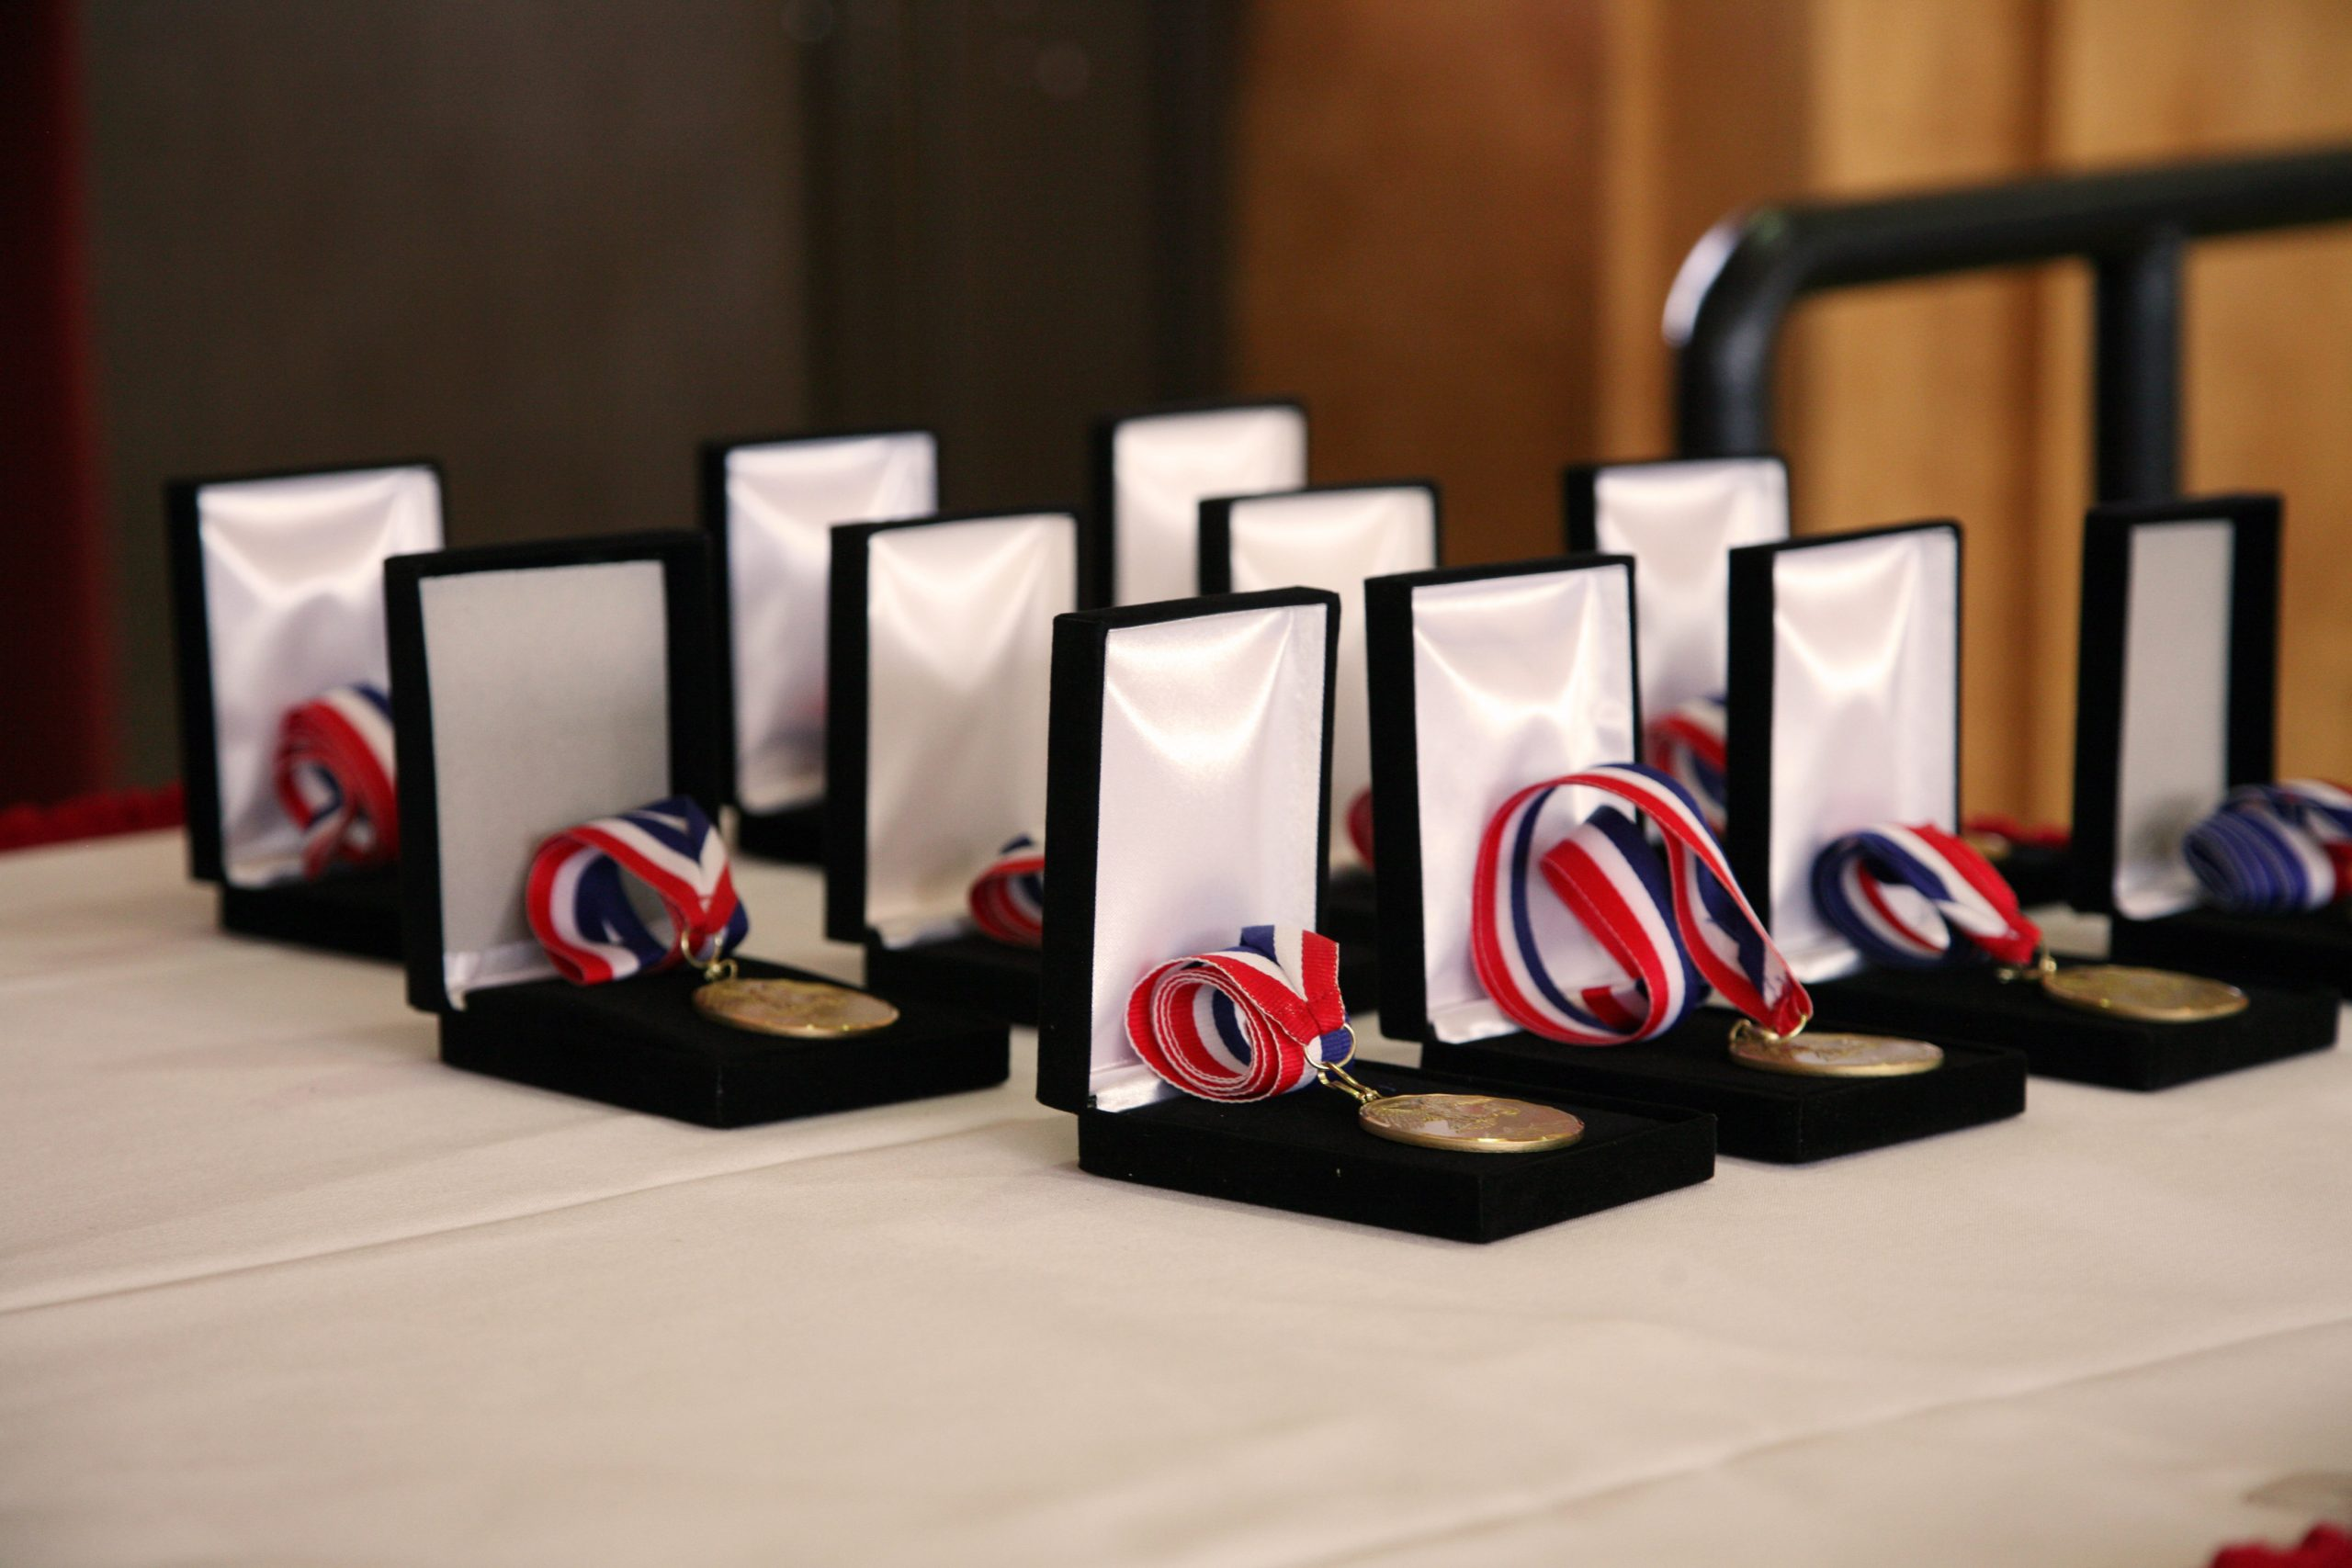 The University of Utah is inviting nominations for 11 Utah veterans to be honored at its 14th annual Veterans Day ceremony. Each honoree will be given a medallion at the full-dress military ceremony on November 11.